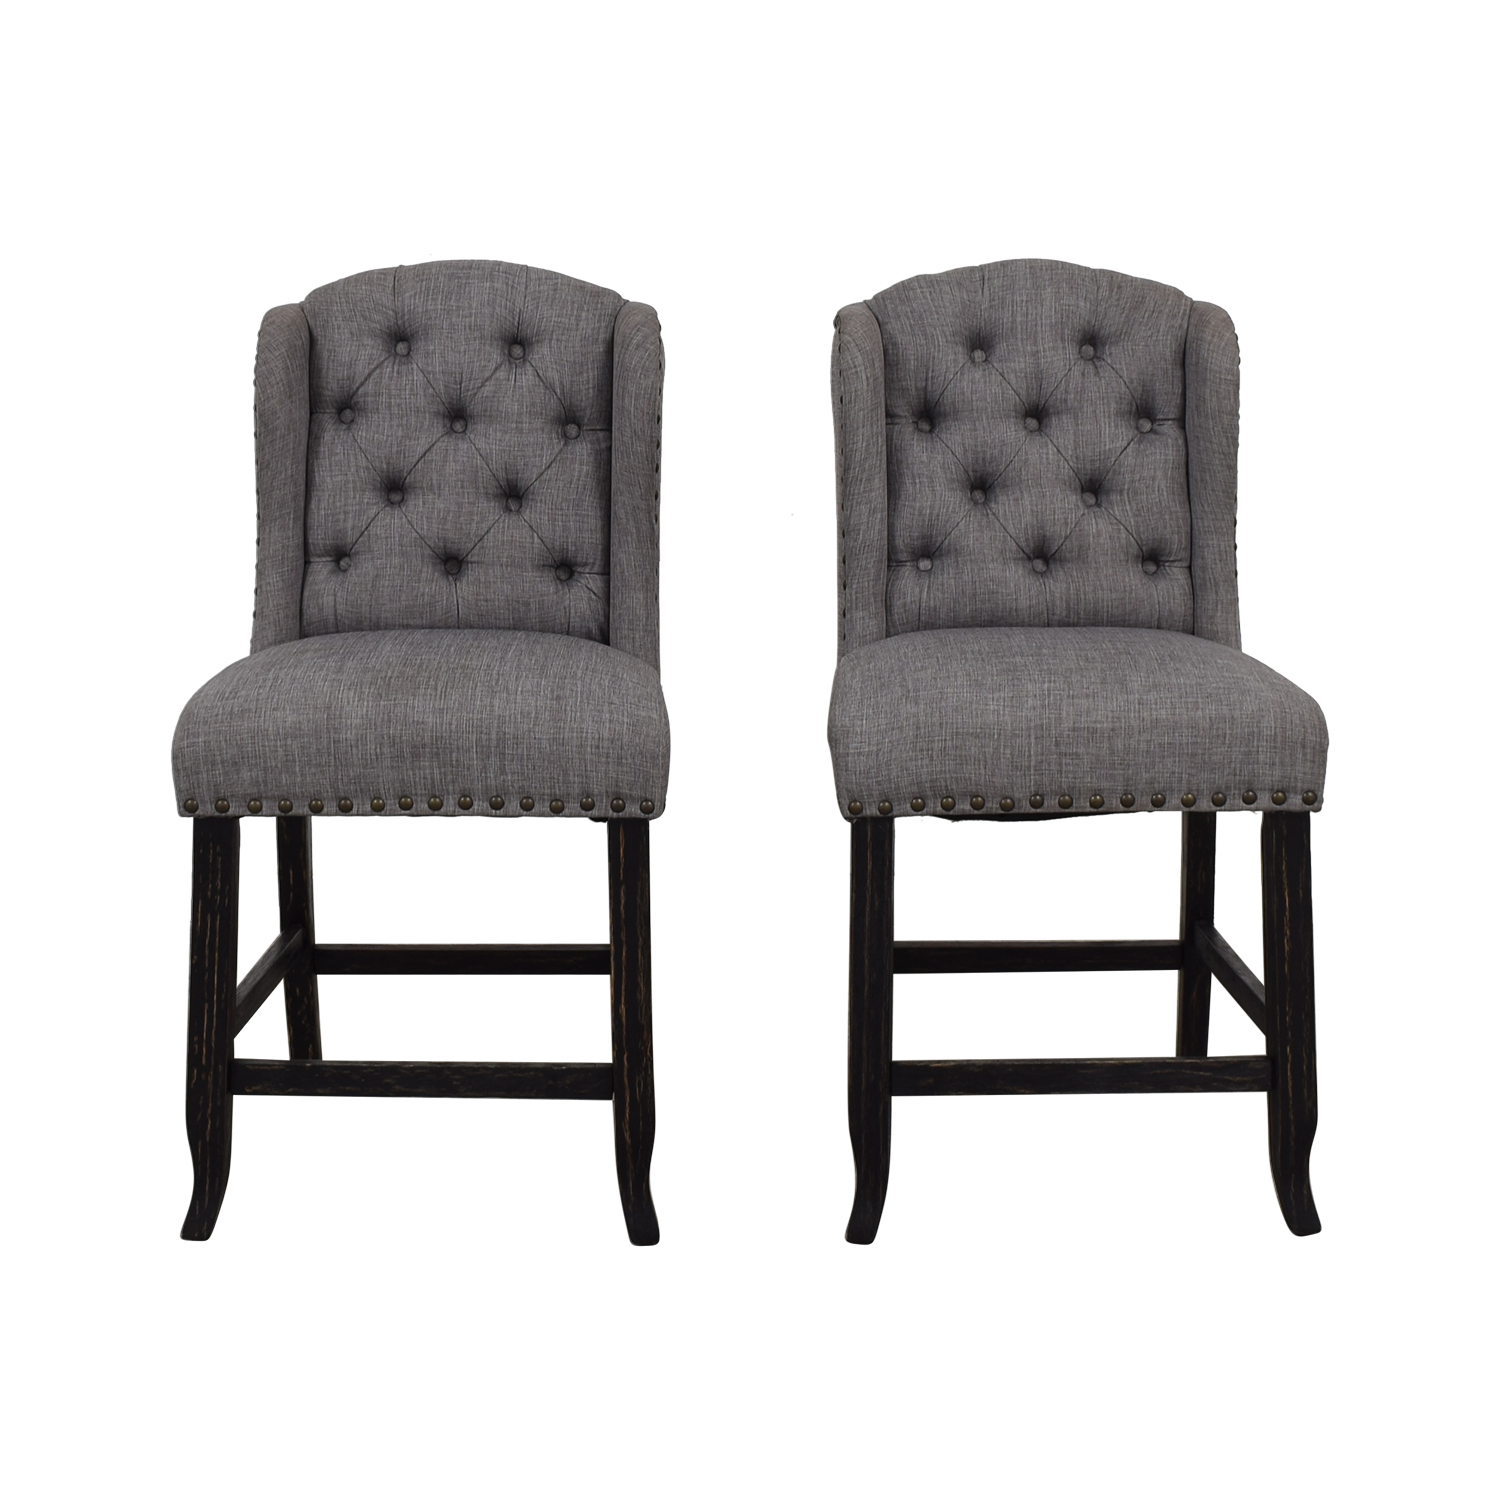 shop Furniture of America Grey Tufted Counter Stools Furniture of America Chairs